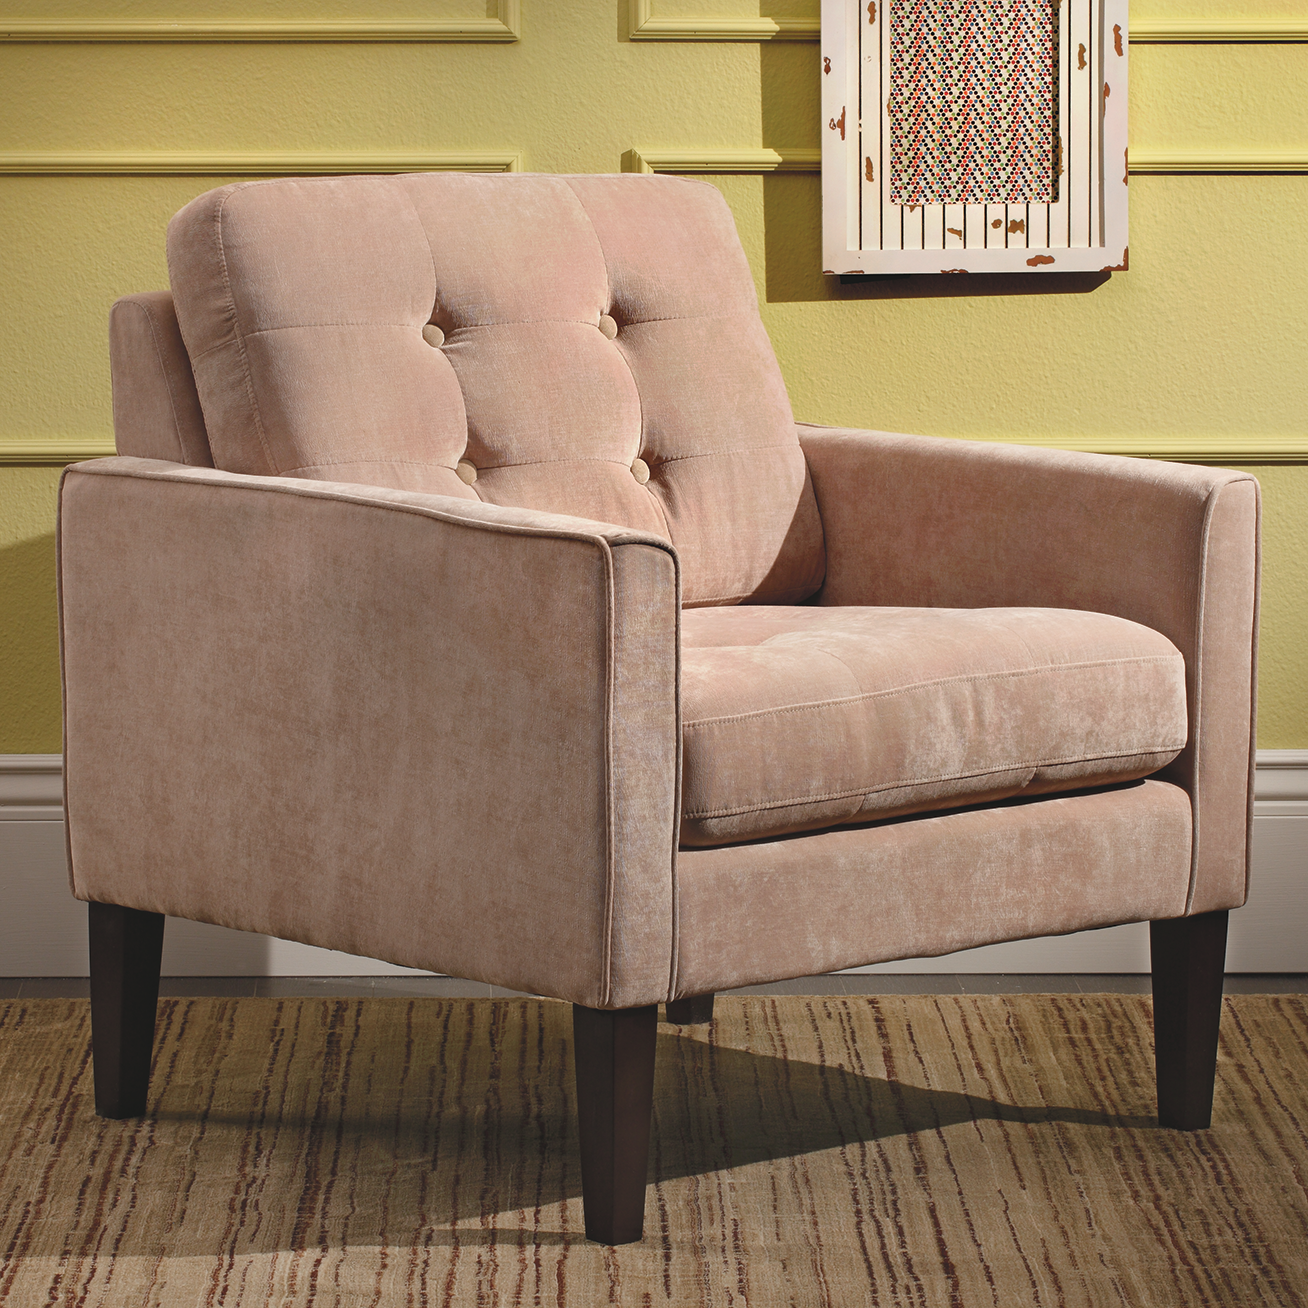 Accent chair pg 14